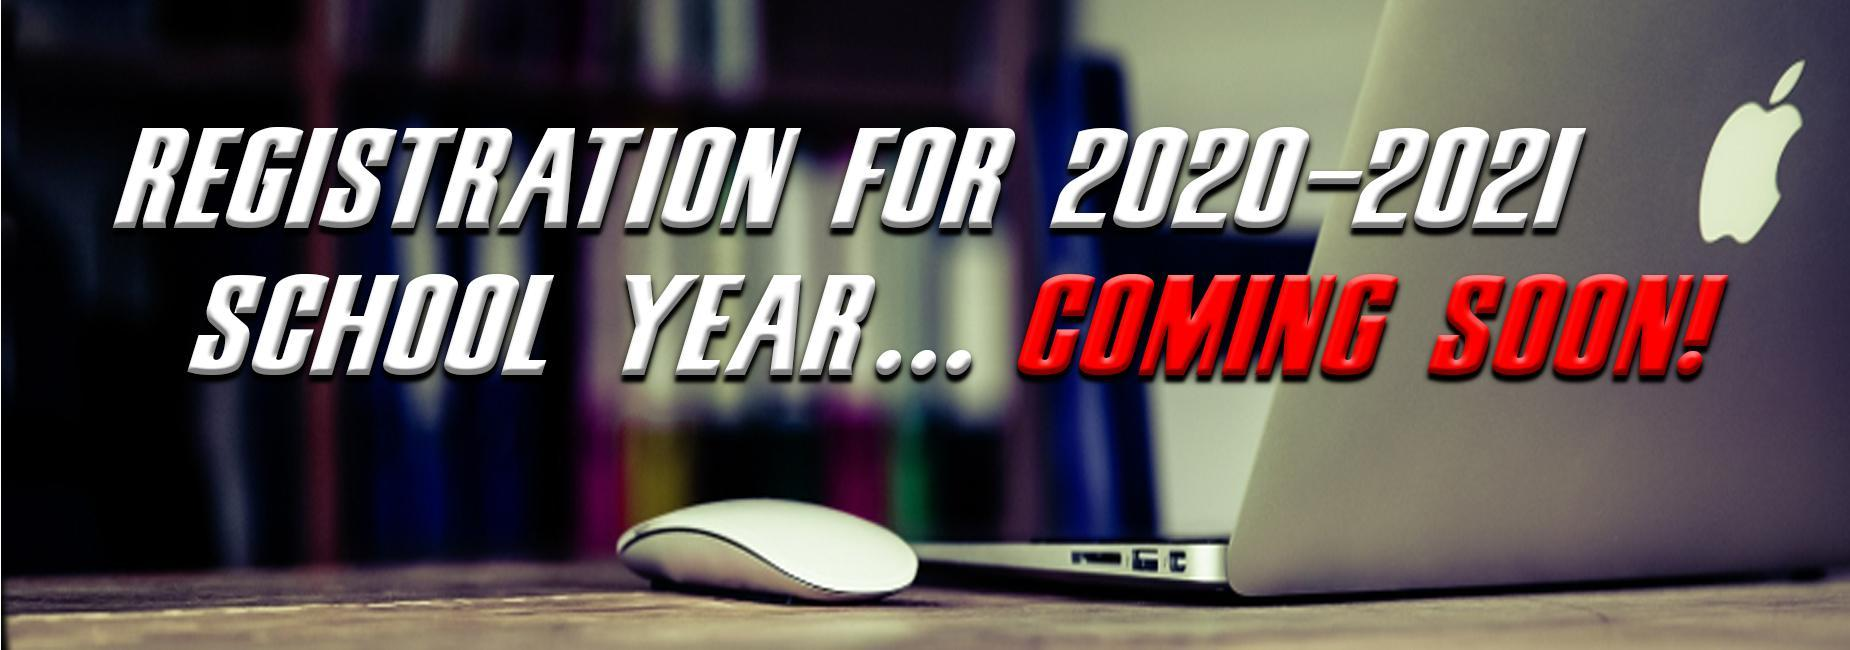 Registration for 20-21 School Year coming soon